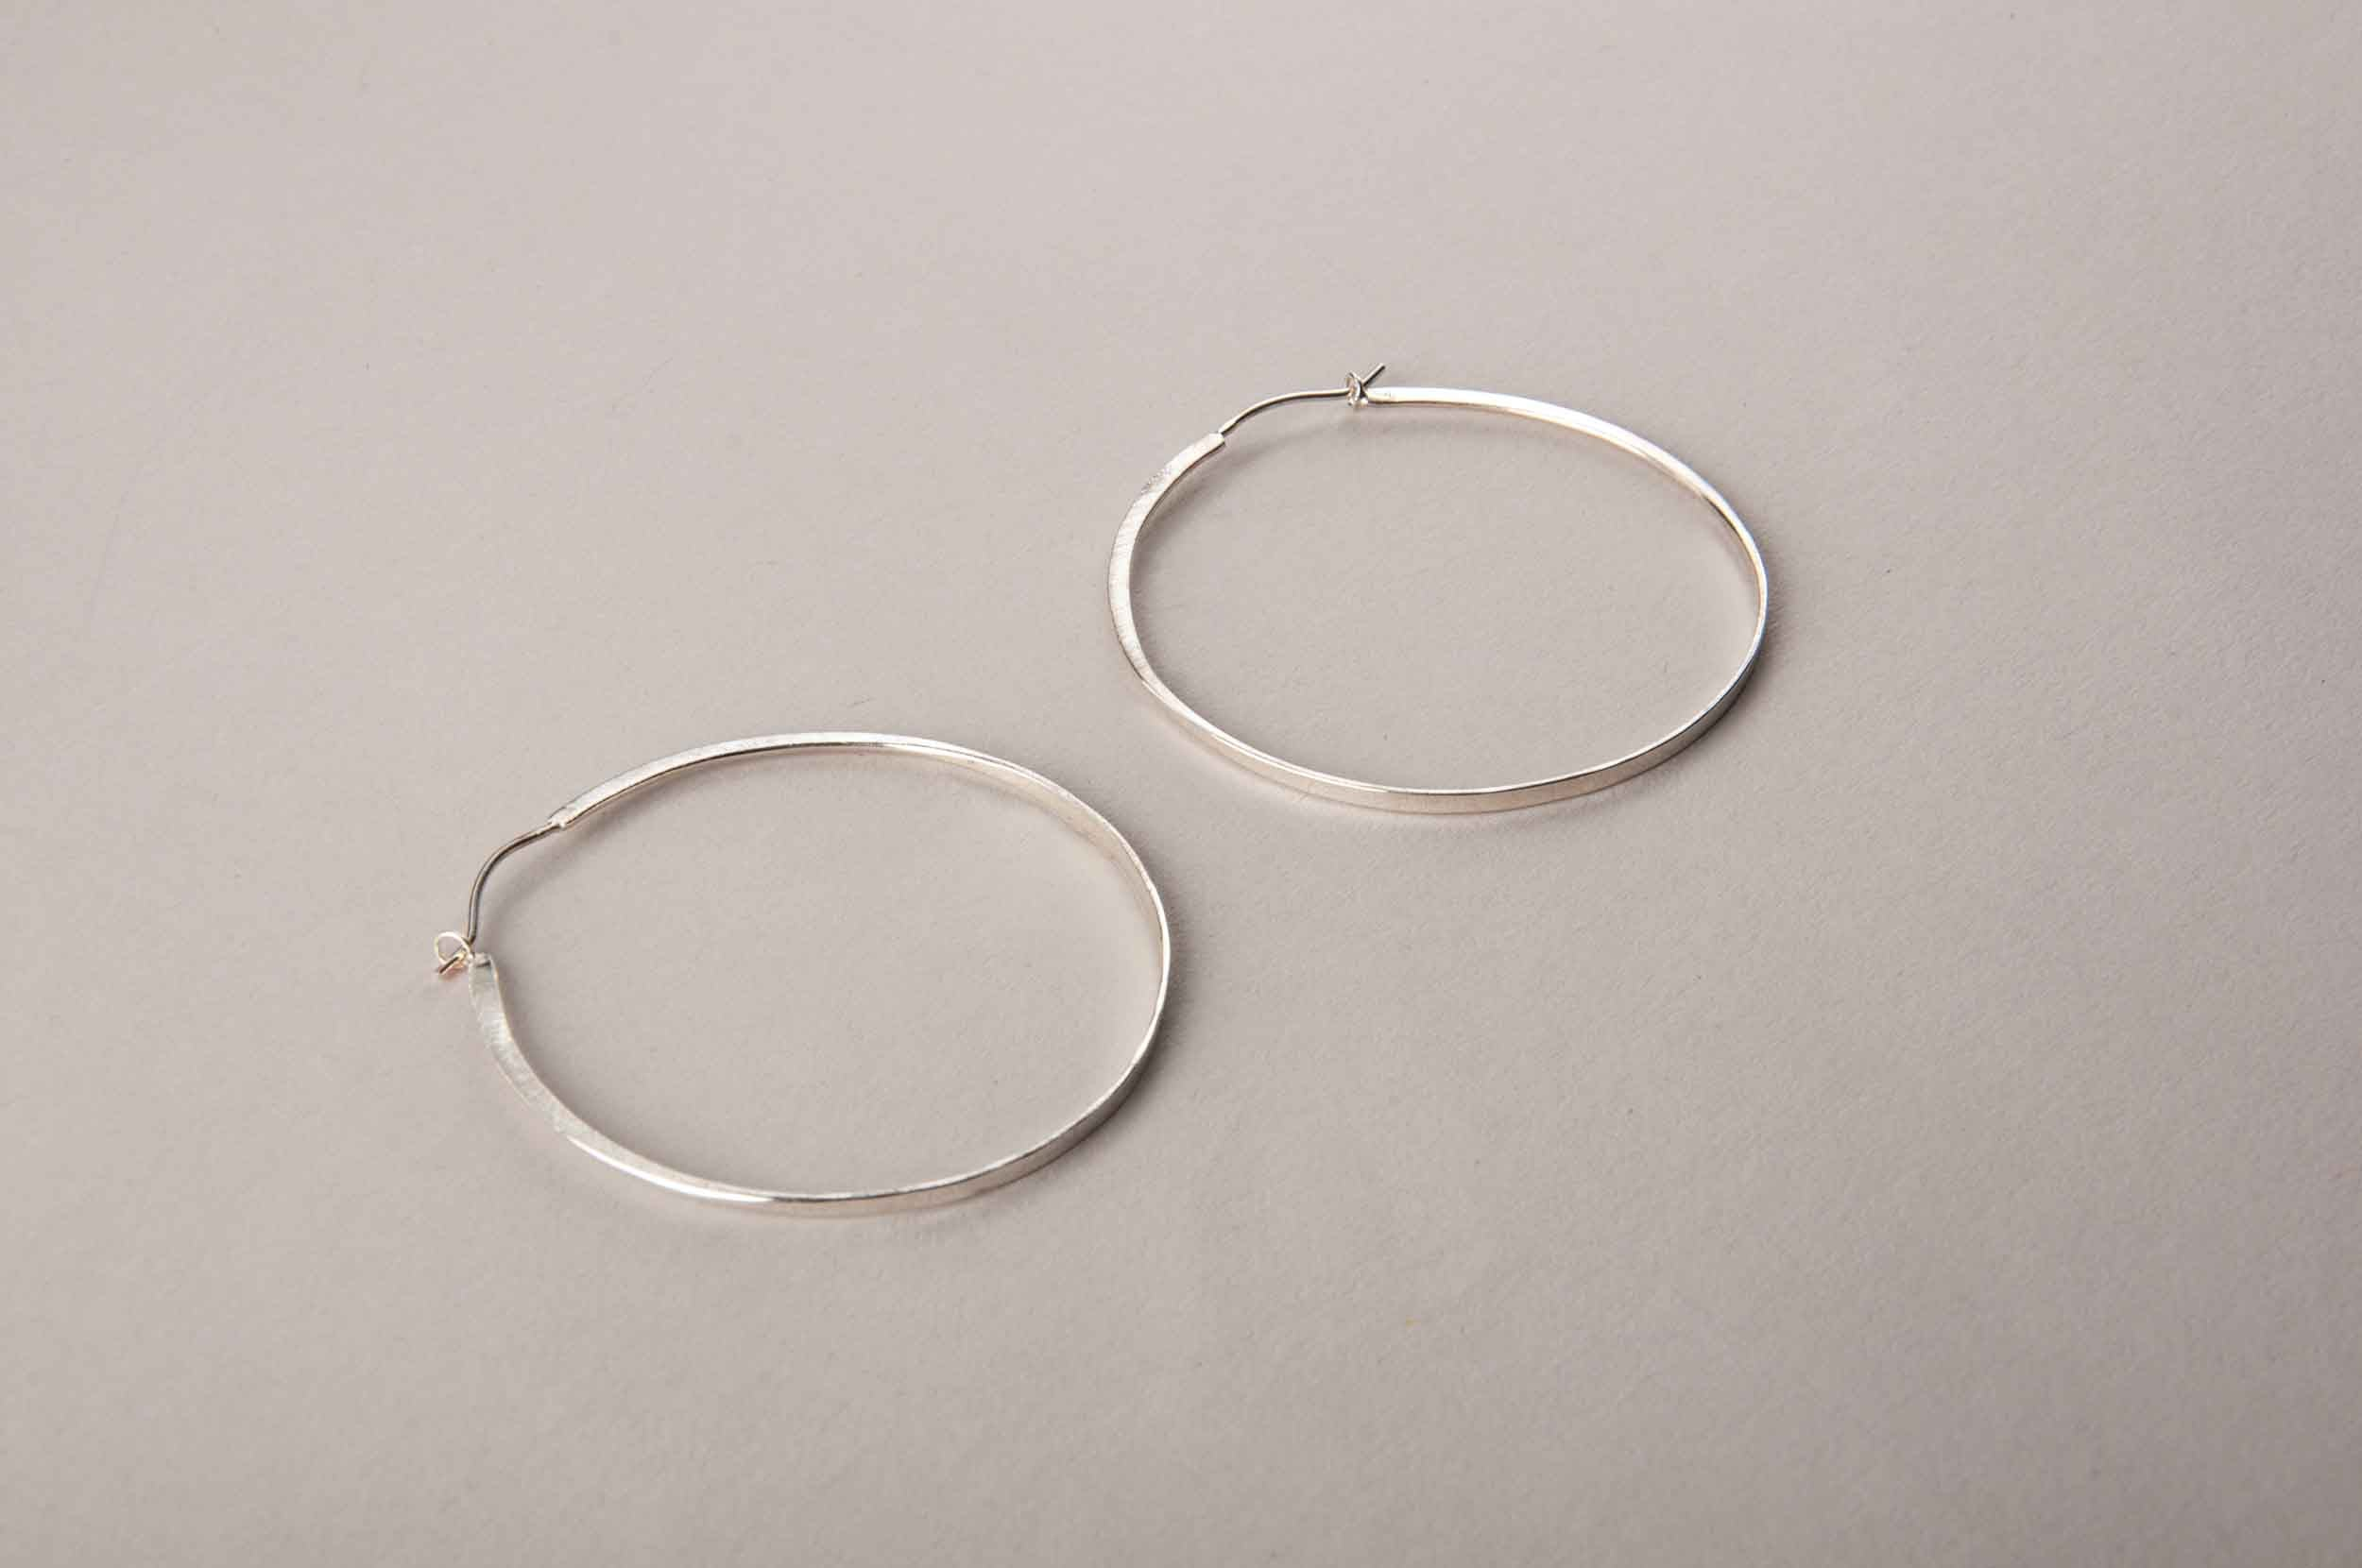 PERPENDICULAR FORGED HOOPS